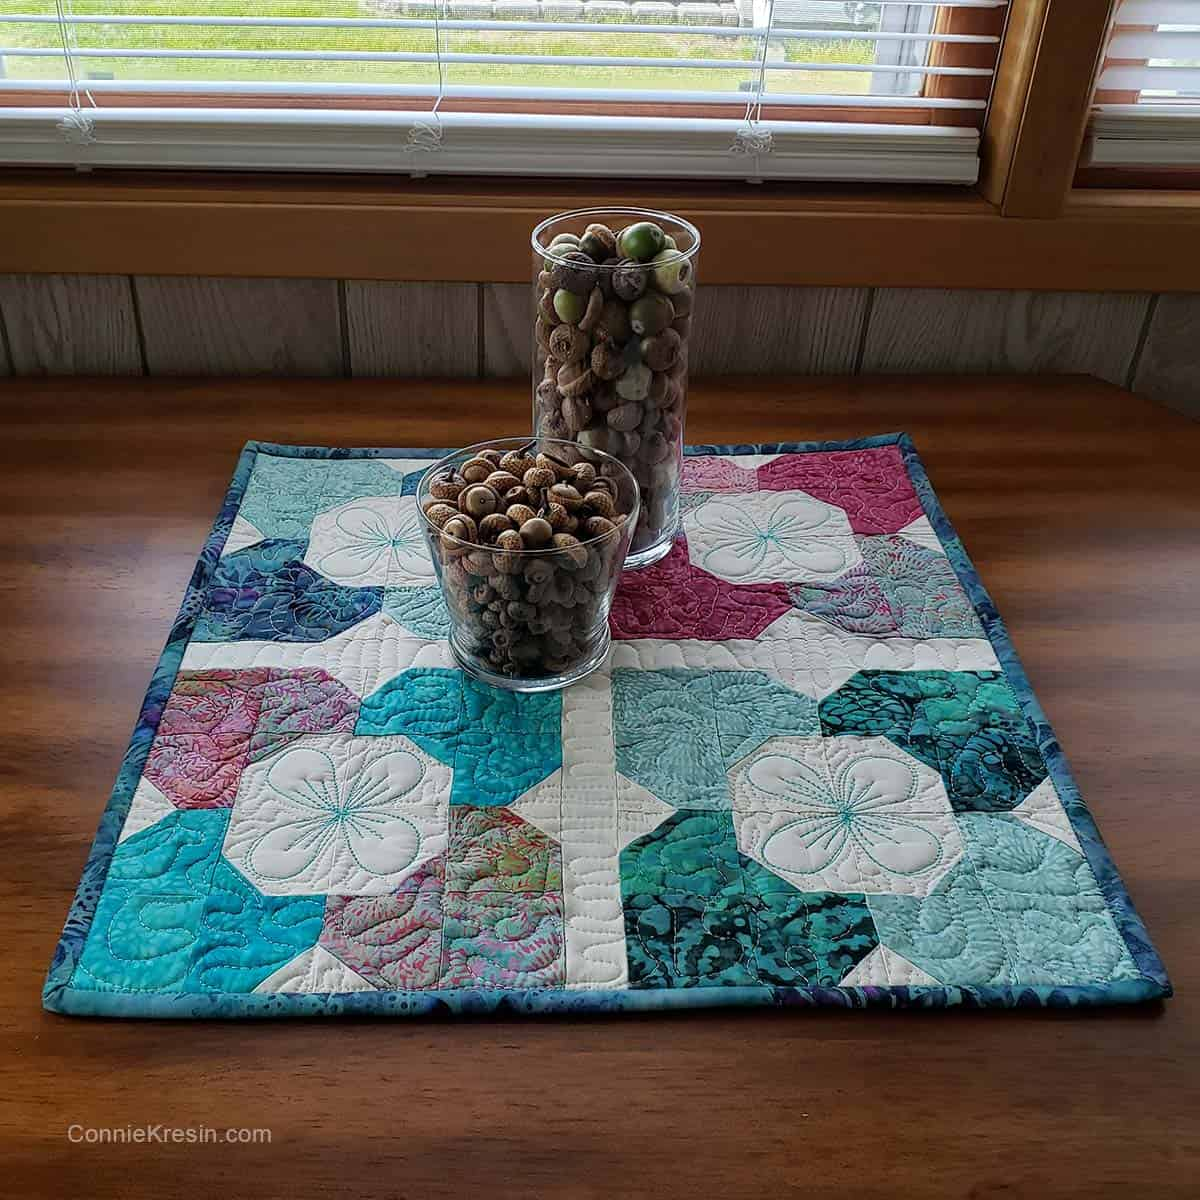 Morning Glory table topper with acorns